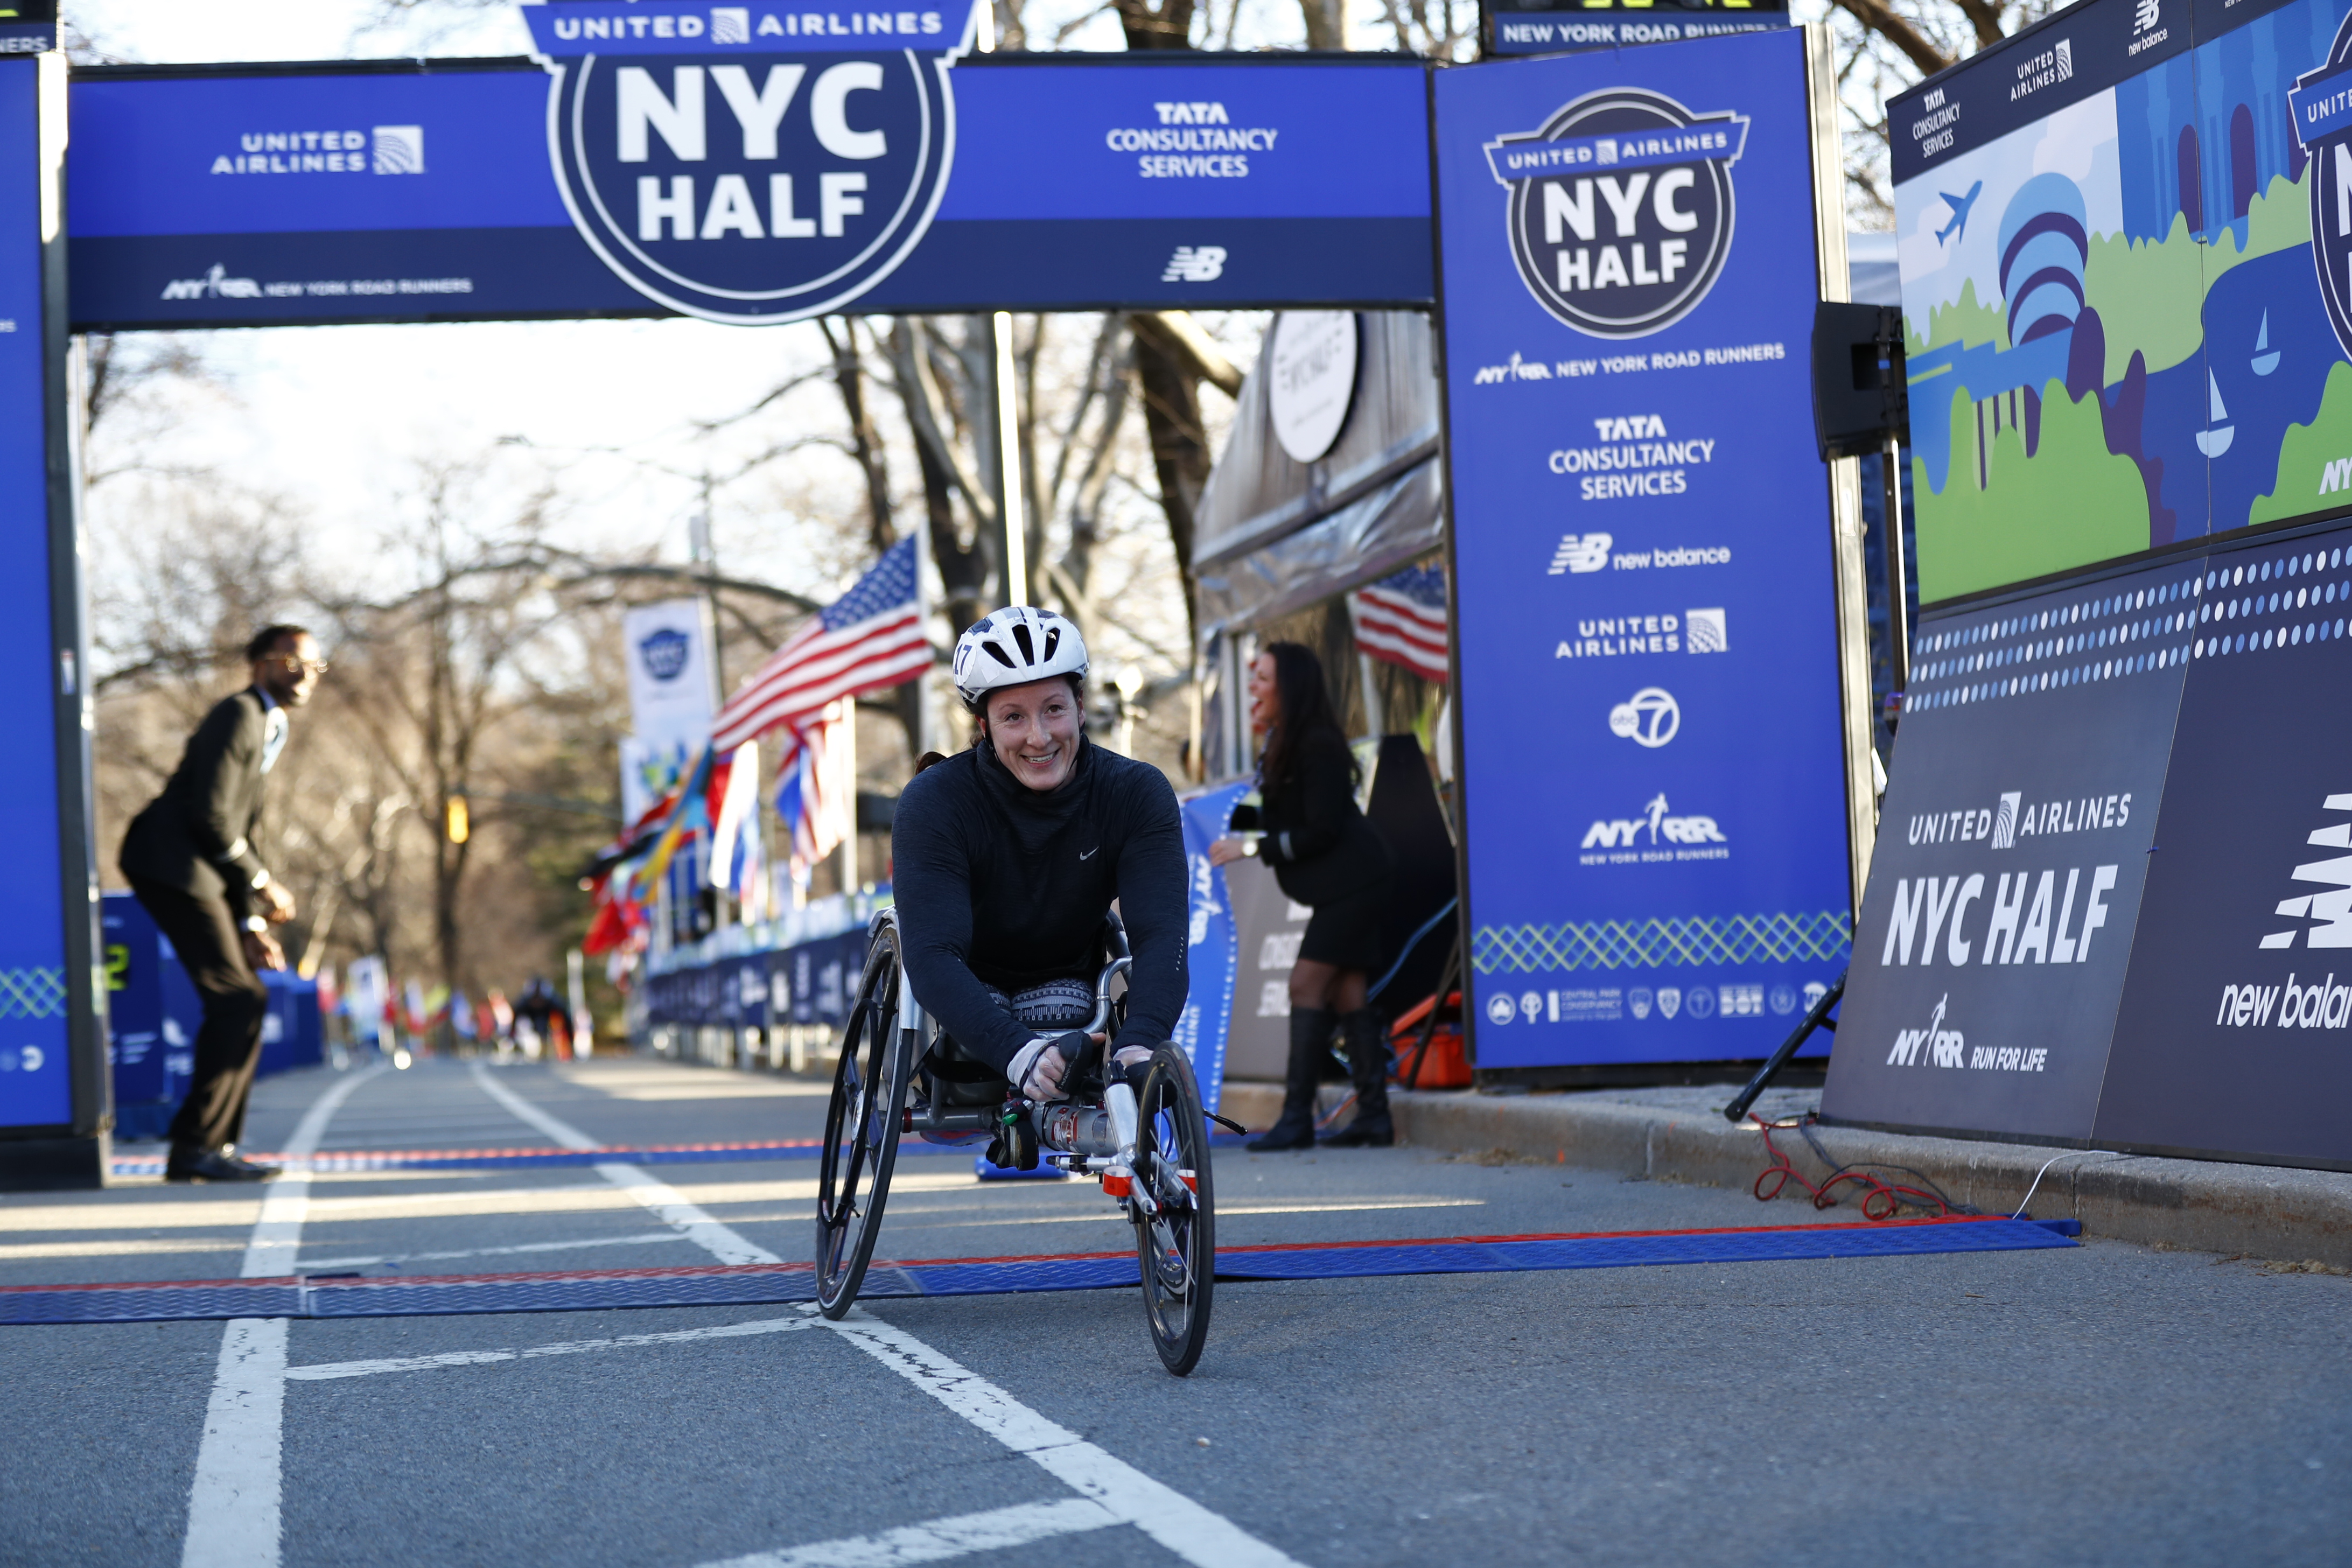 Tatyana McFadden smiling at the finish line of the 2019 United Airlines NYC Half.